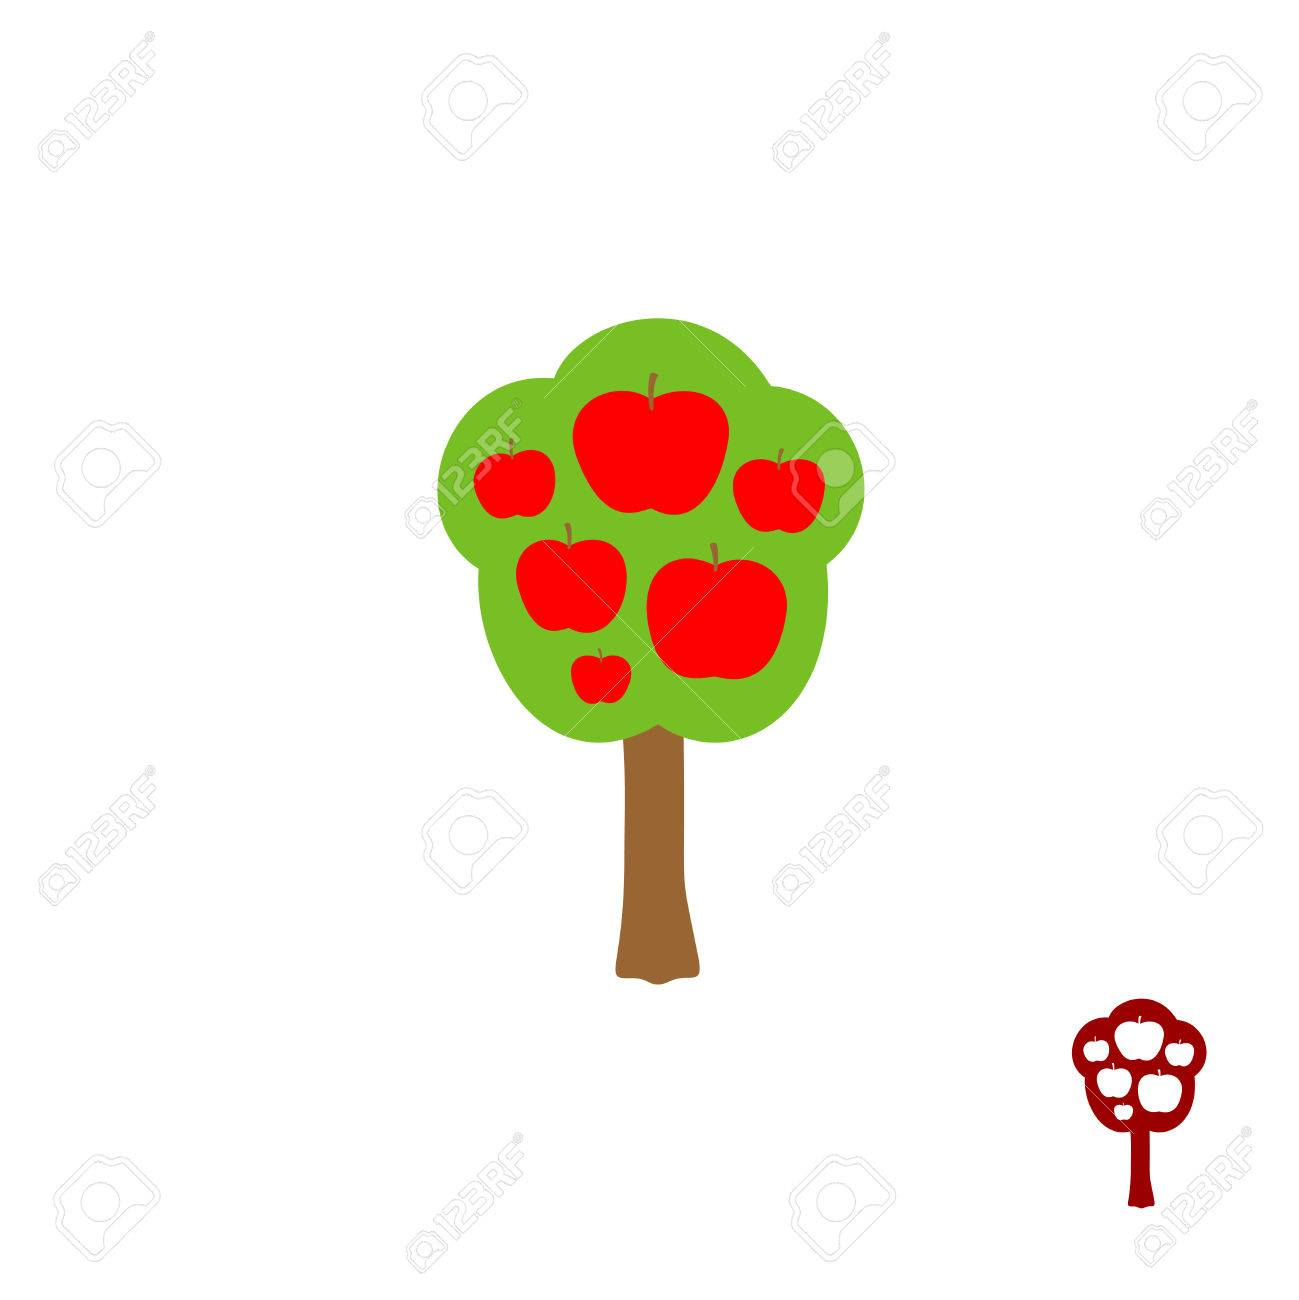 Fruit Apple Tree Logo Vector Royalty Free Cliparts Vectors And Stock Illustration Image 47972334